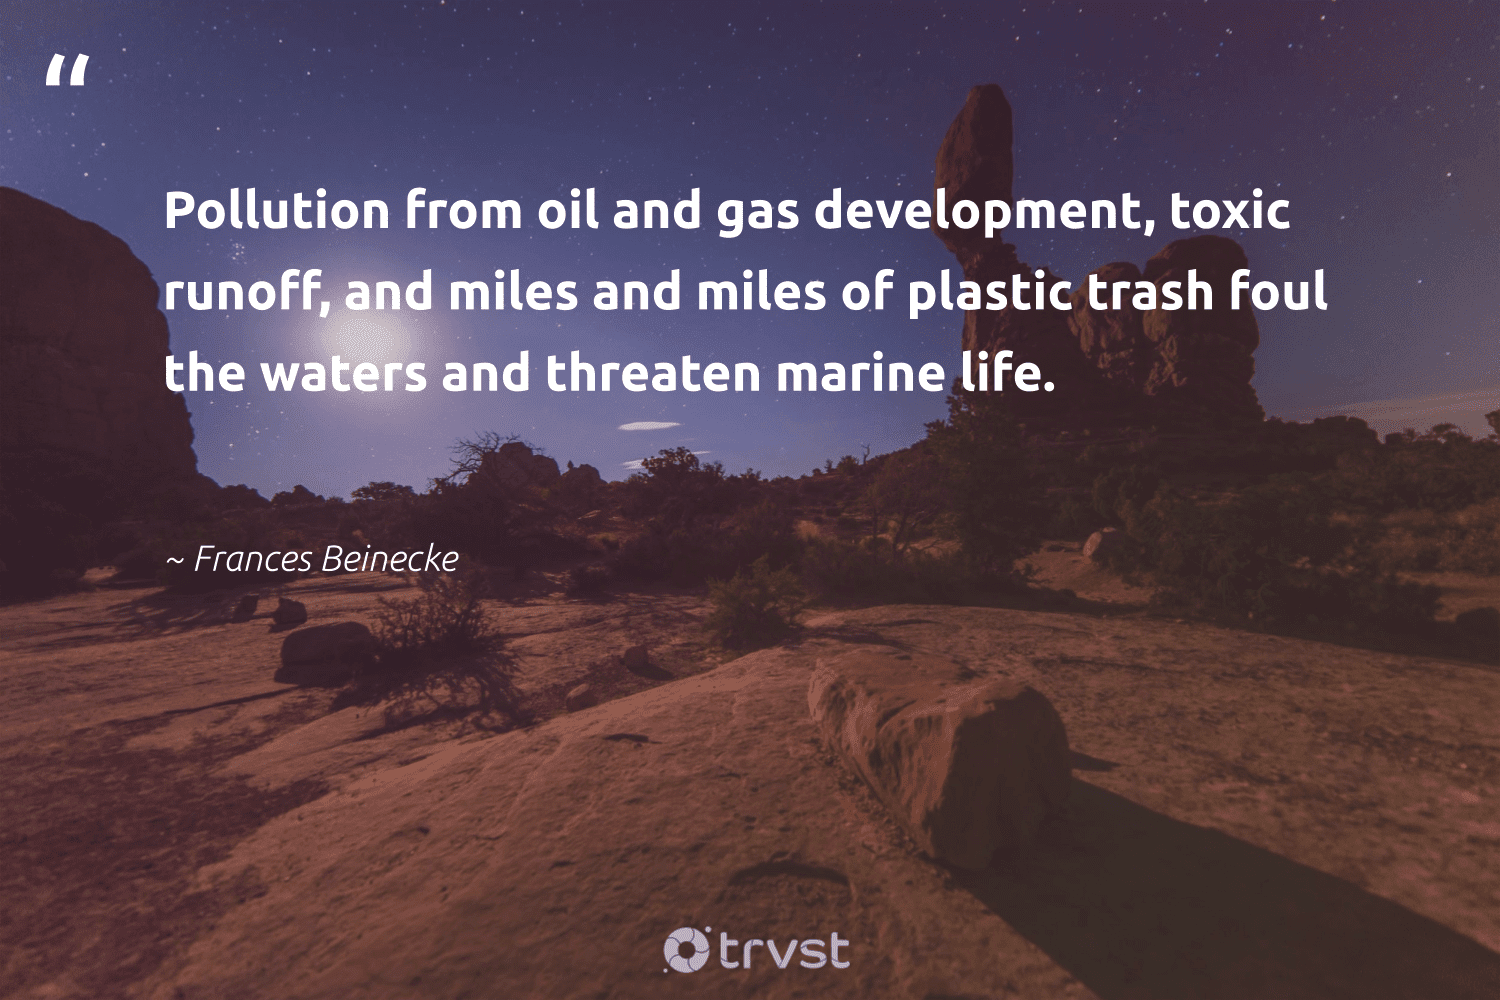 """""""Pollution from oil and gas development, toxic runoff, and miles and miles of plastic trash foul the waters and threaten marine life.""""  - Frances Beinecke #trvst #quotes #trash #plastic #oil #gas #pollution #toxic #marinelife #marine #development #scubadiving"""